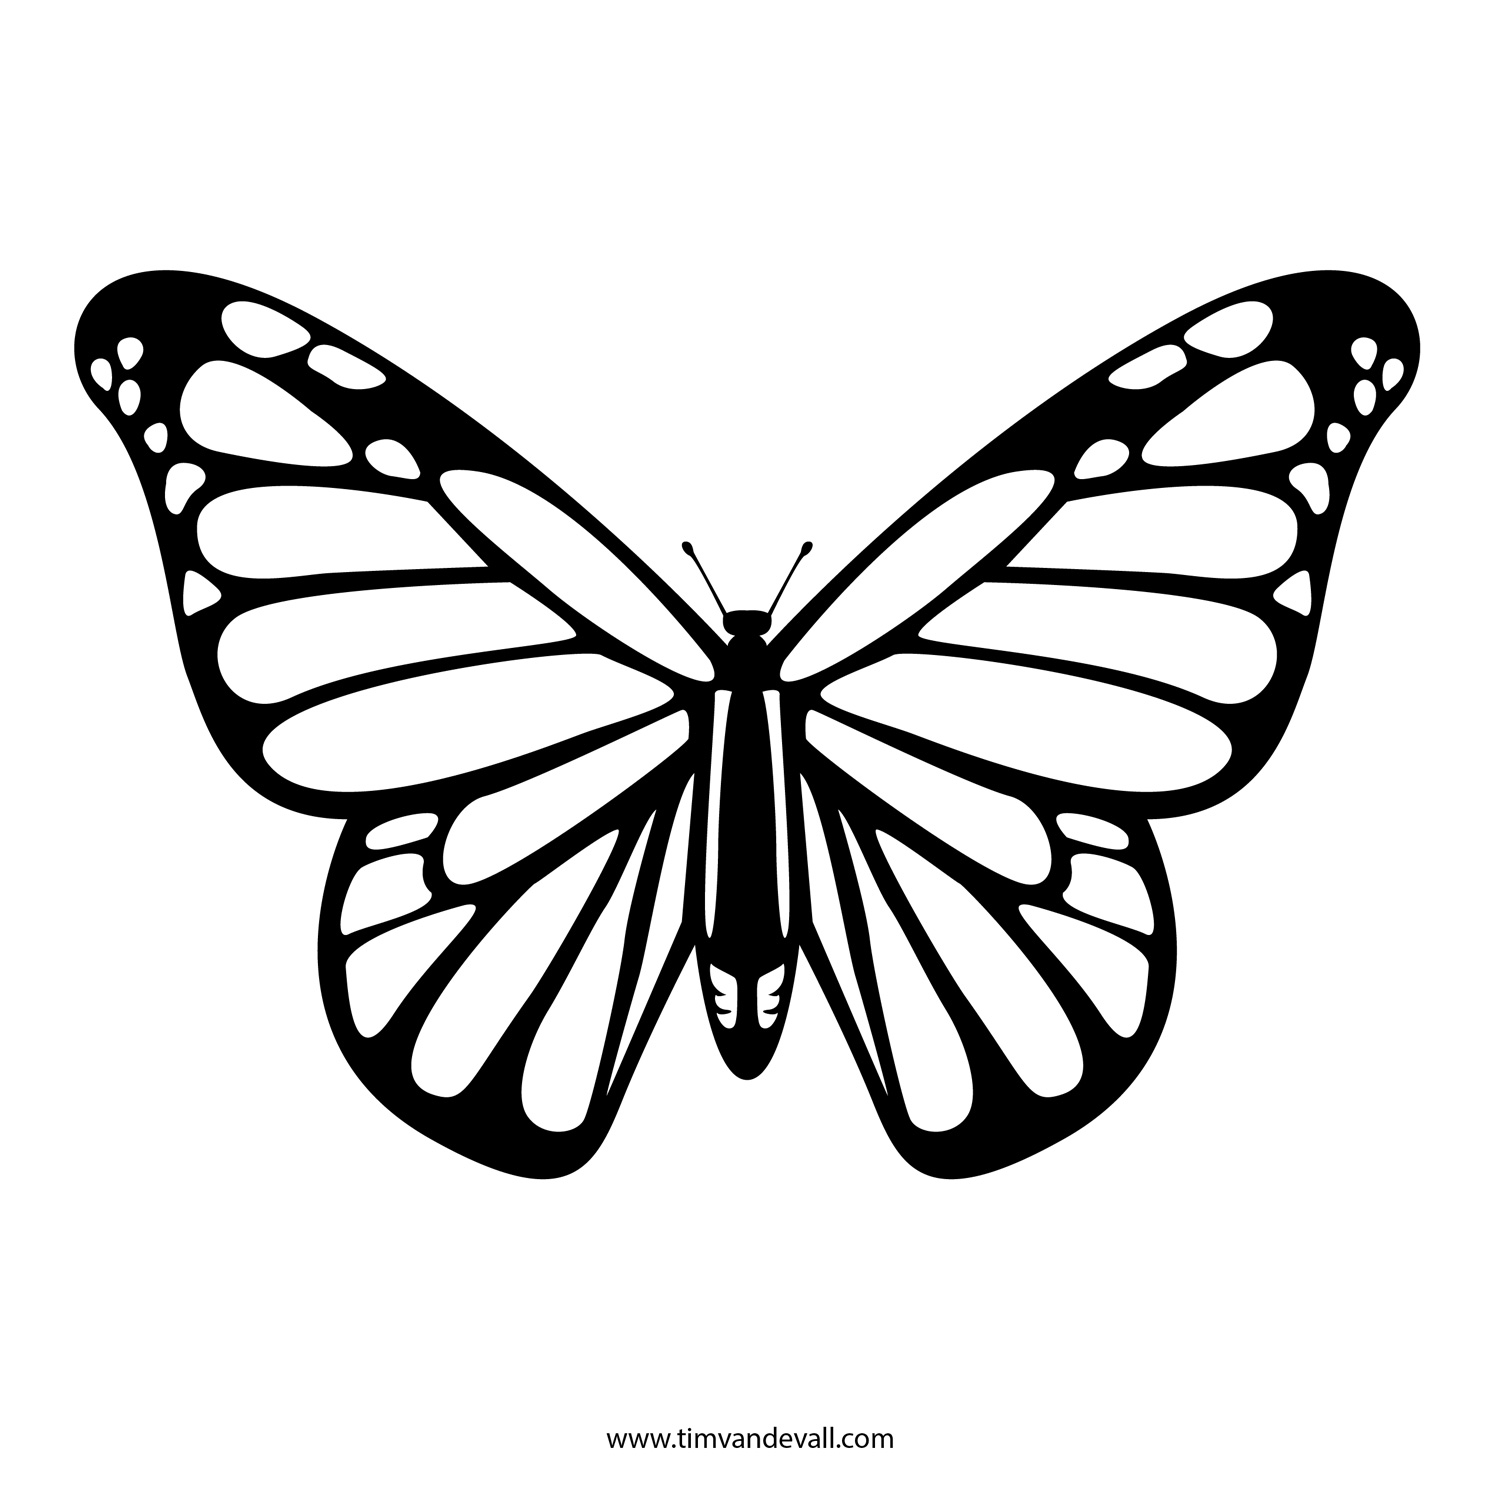 7 Images of Monarch Butterfly Stencil Printable